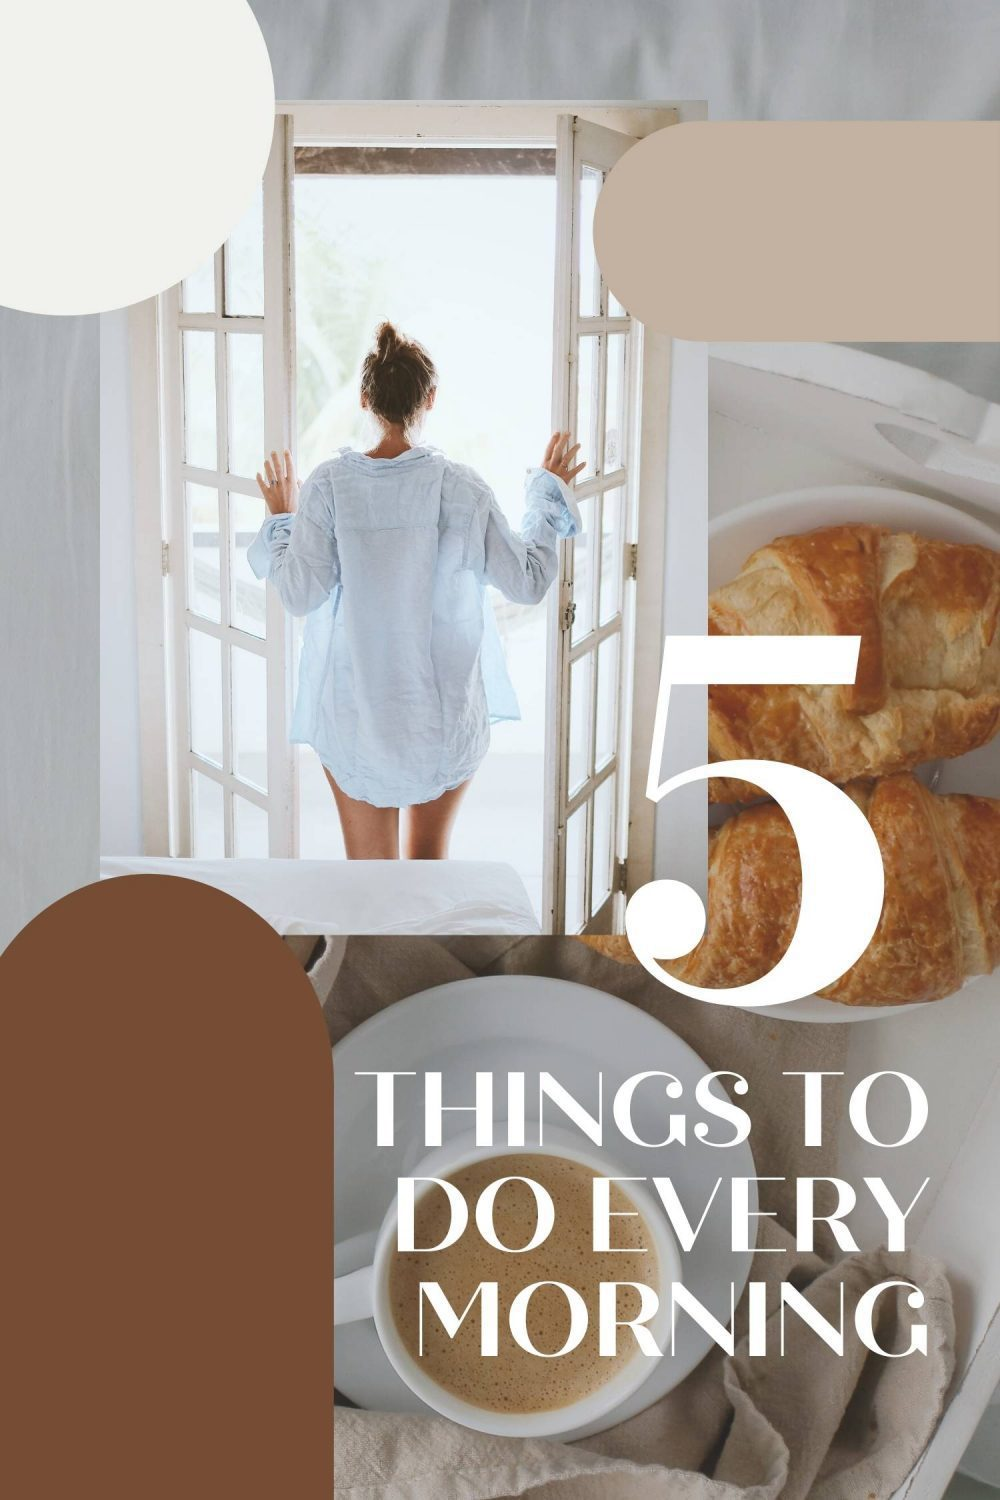 Having good morning habits will set the tone for your day and help you be more productive and focused. Try adding these  5 easy habits to improve your day!